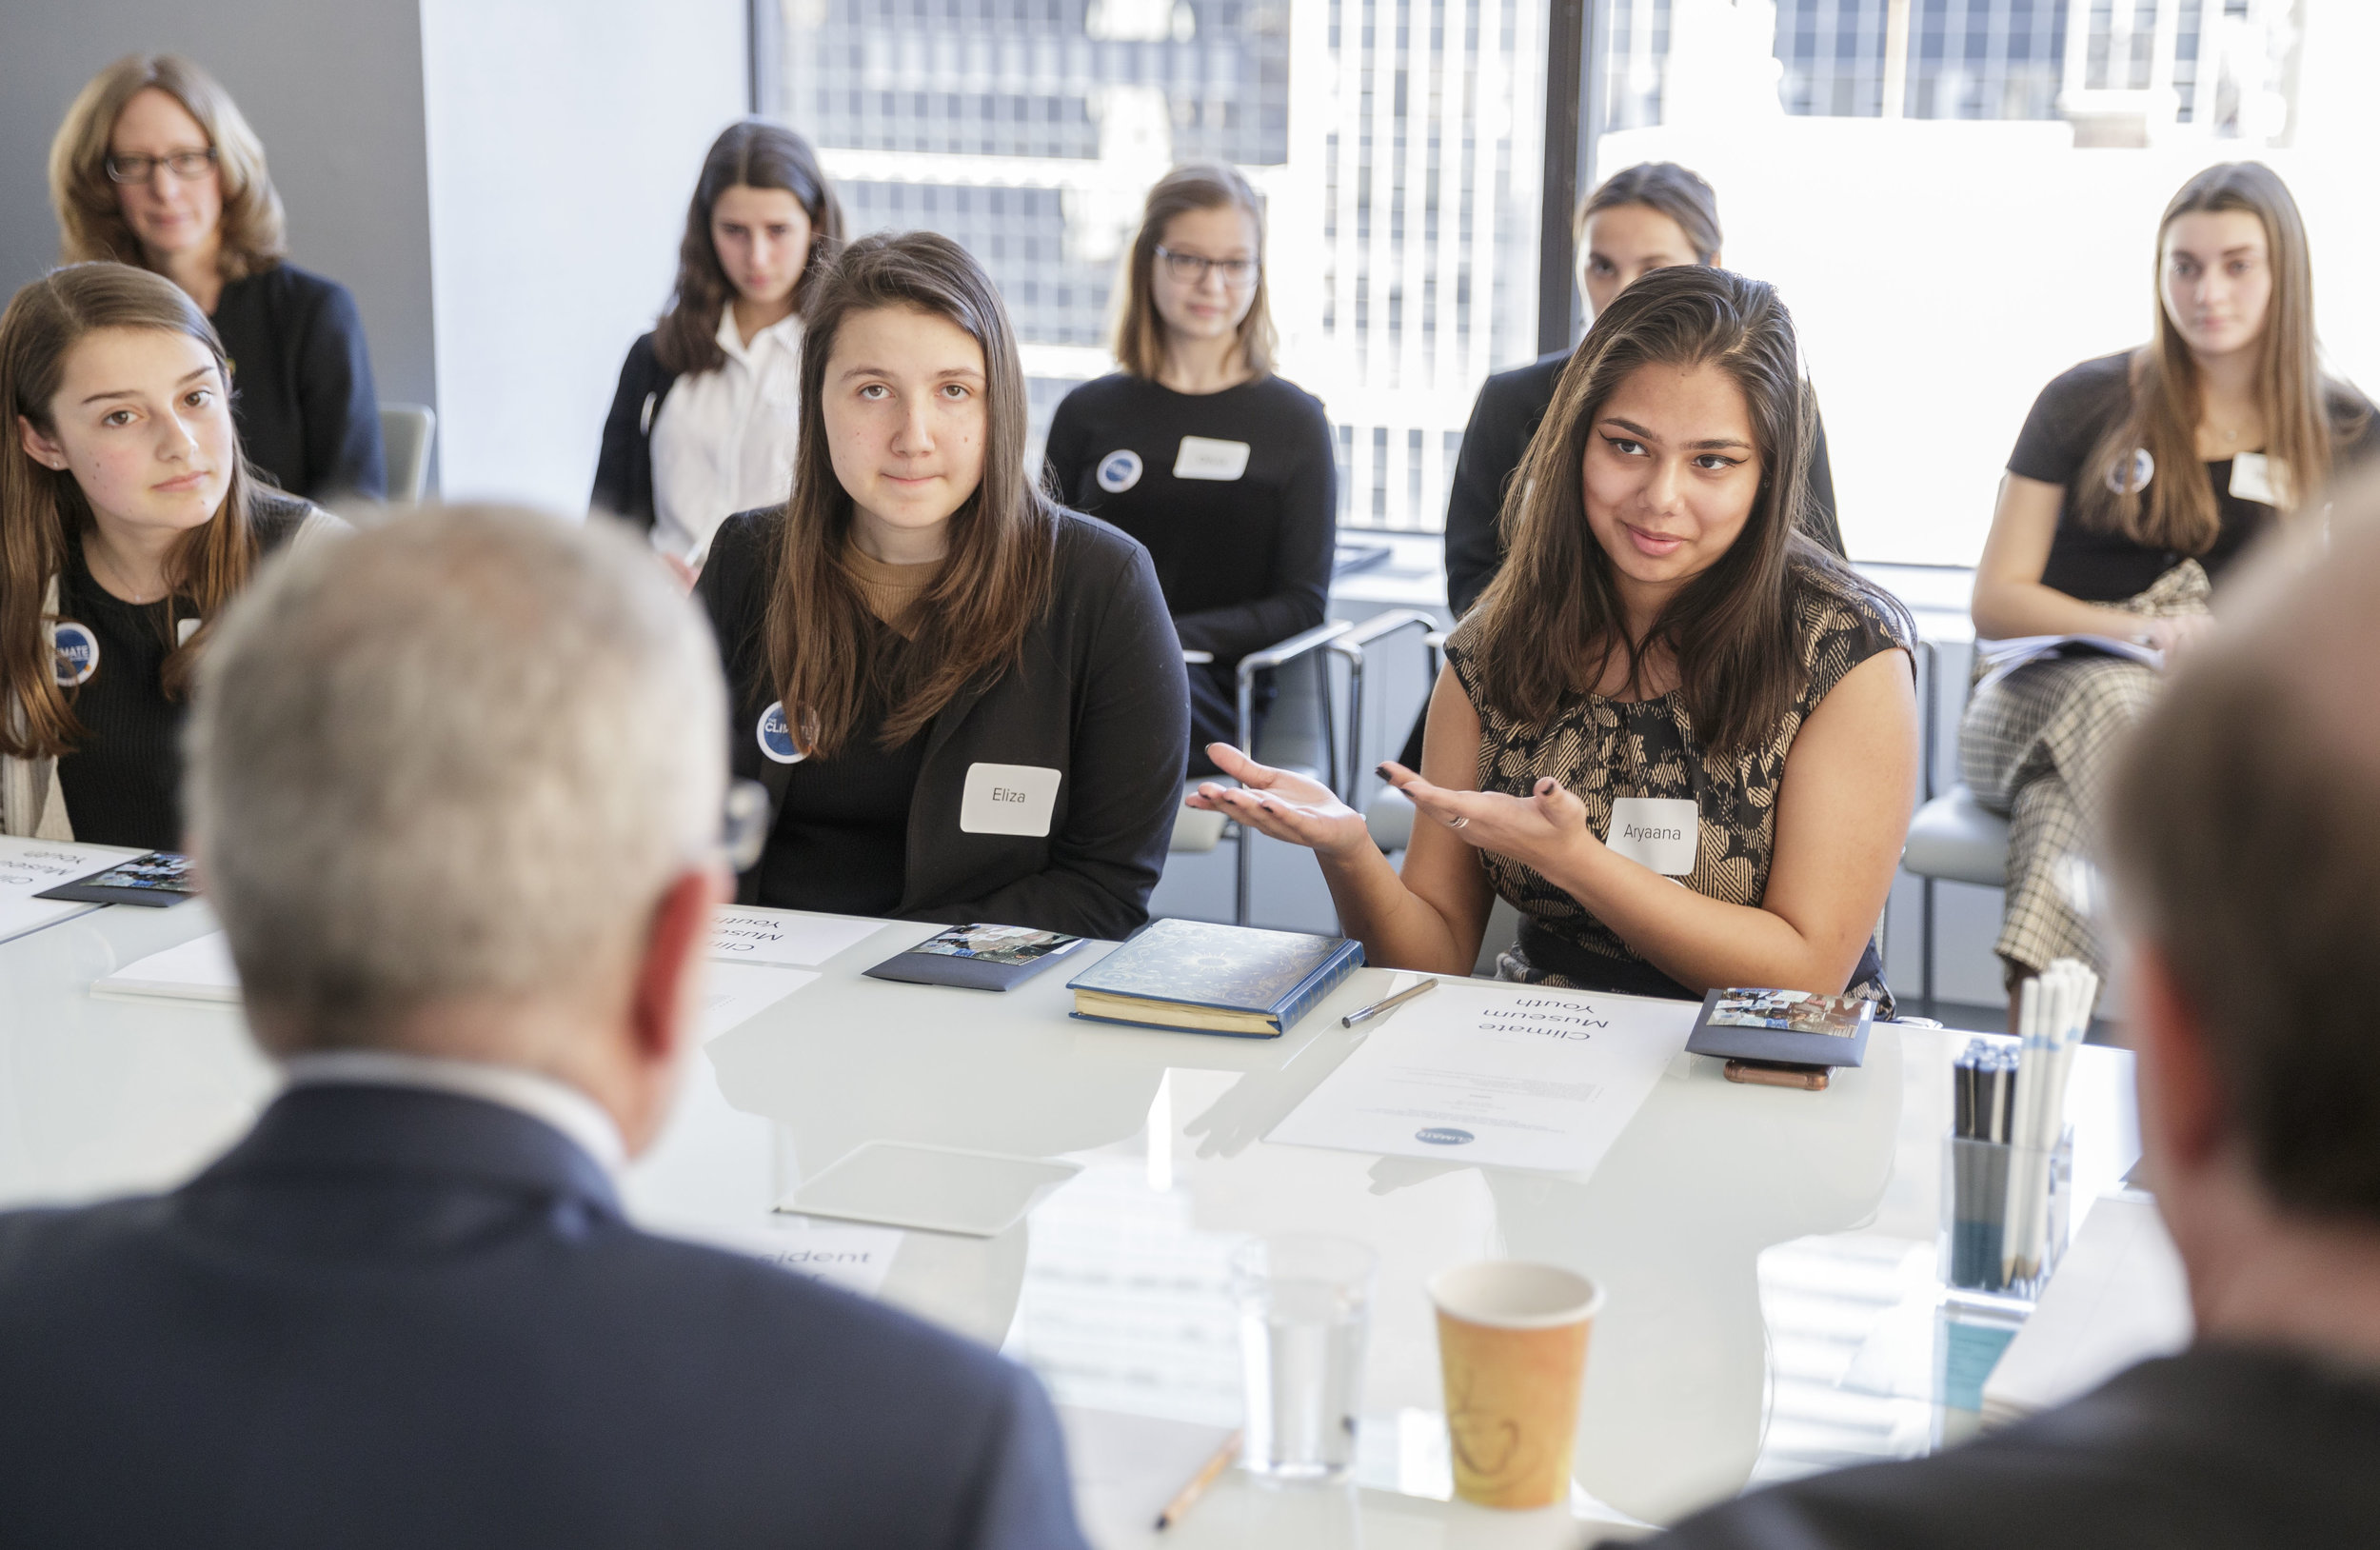 """We have to break the climate silence,"" was one of the key sentences in the discussion with youth advisory council members of New York's Climate Museum."